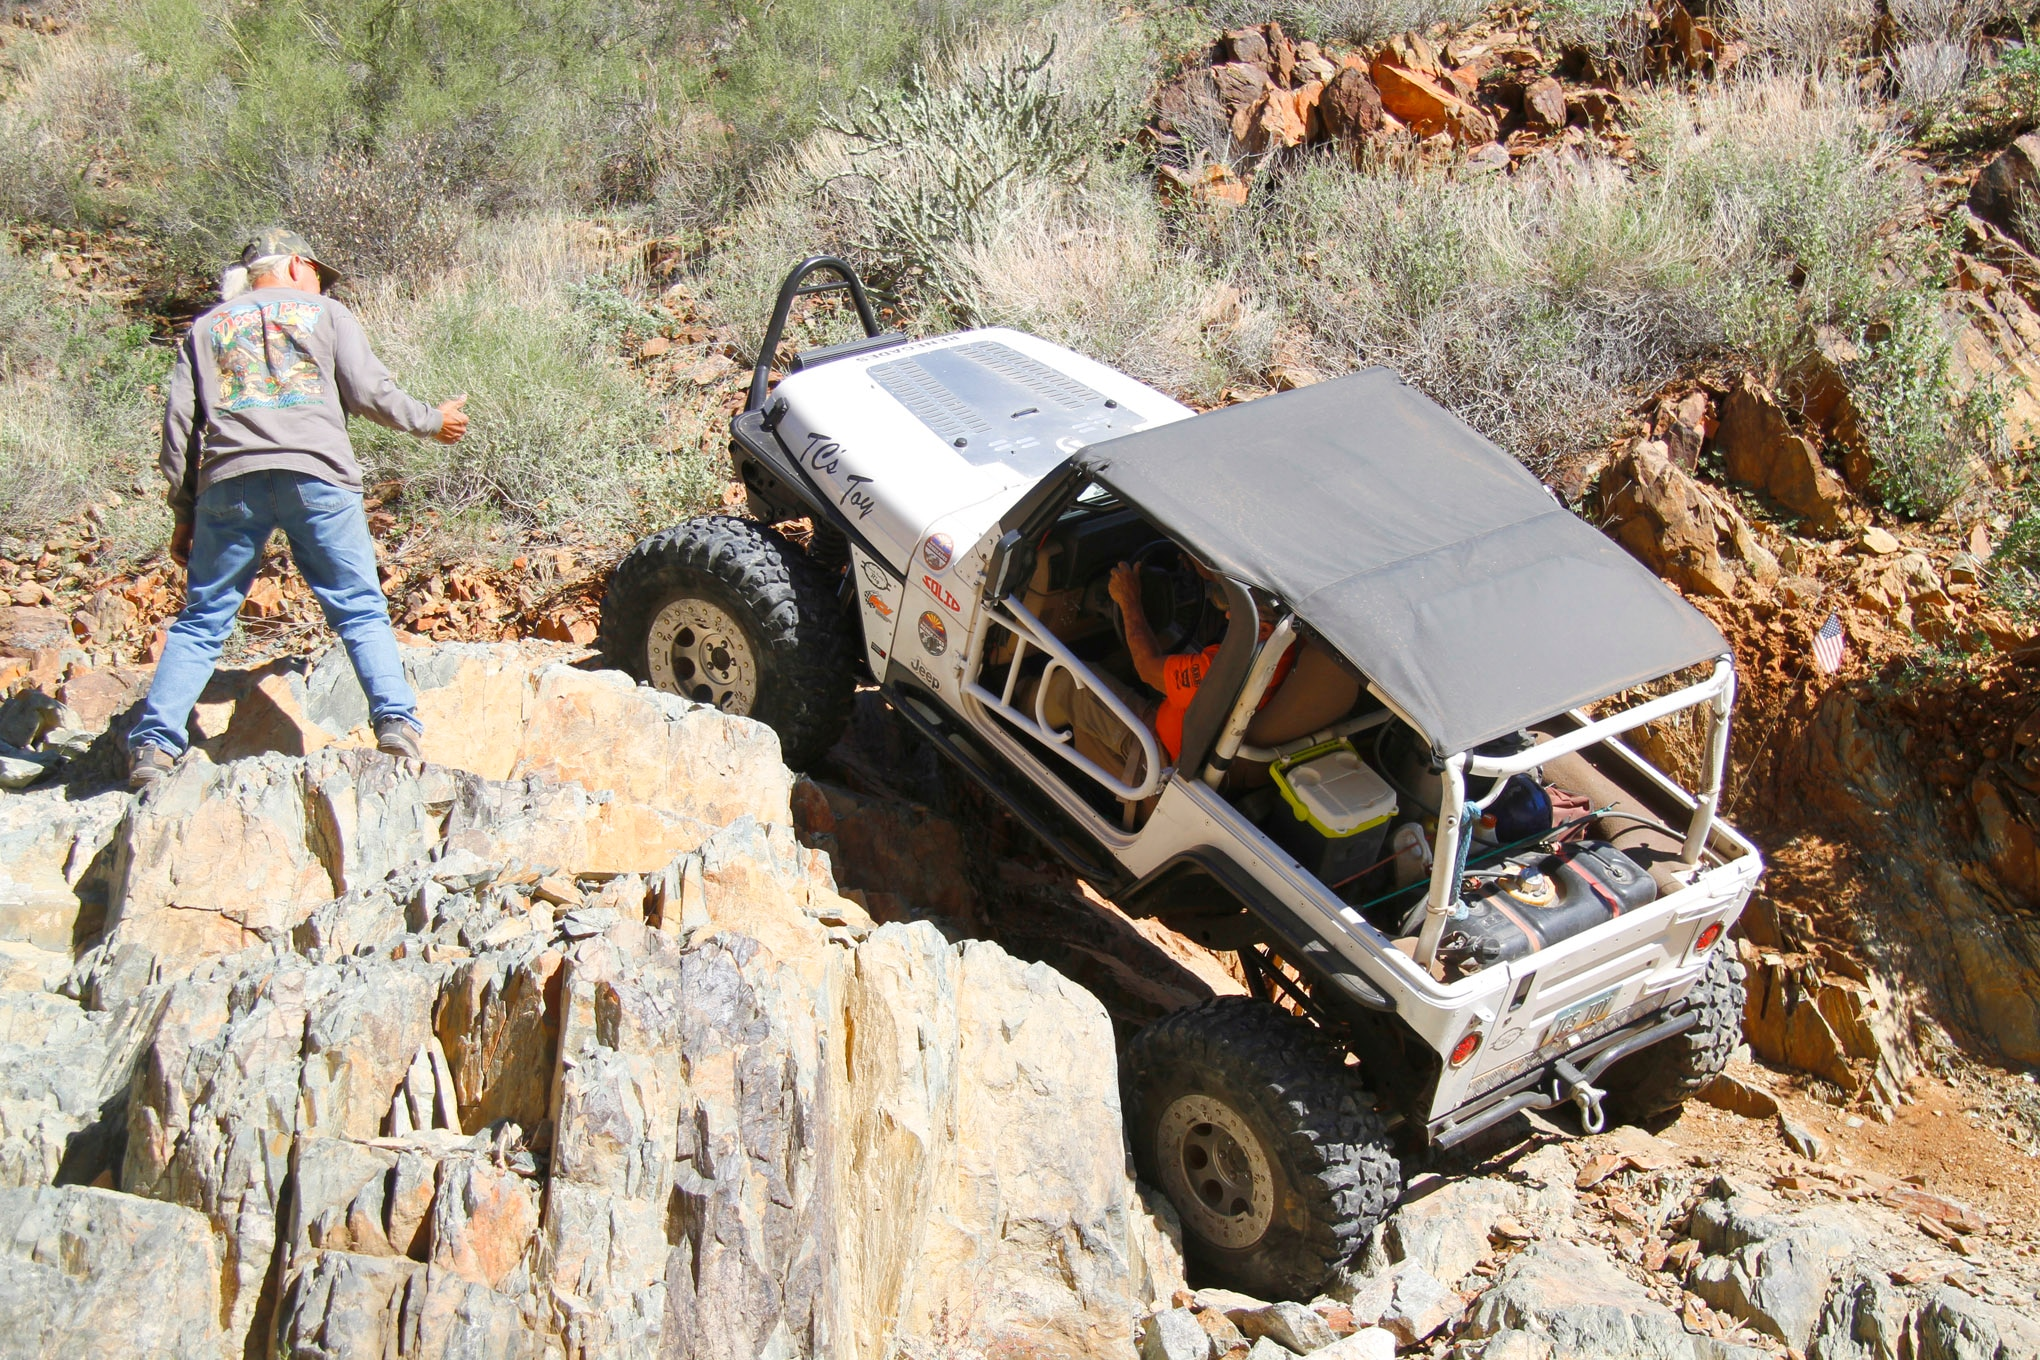 Thom Campbell is a skilled Jeeper, putting his 2001 Wrangler down a lot of Southwestern trails. Front and rear Dana 44 axles with Detroit Lockers serve him well on this stretched rig. Pit Bull Rockers on TrailReady beadlocks provide traction under a 5.5-inch Rubicon Express long-arm suspension.